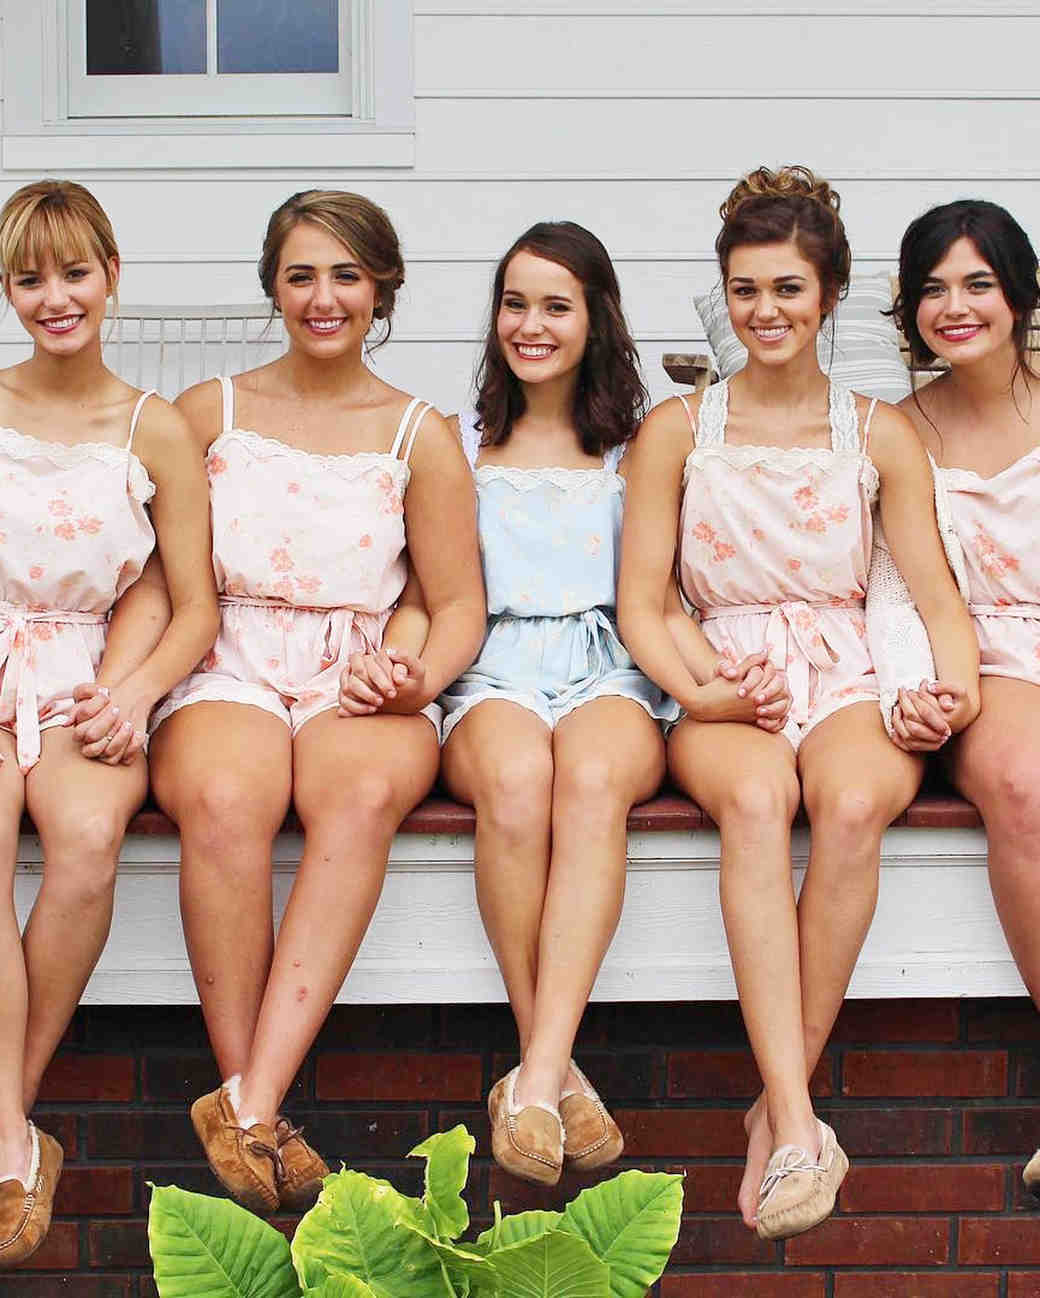 Bridesmaids' Robes Alternatives to Set You and Your 'Maids ...